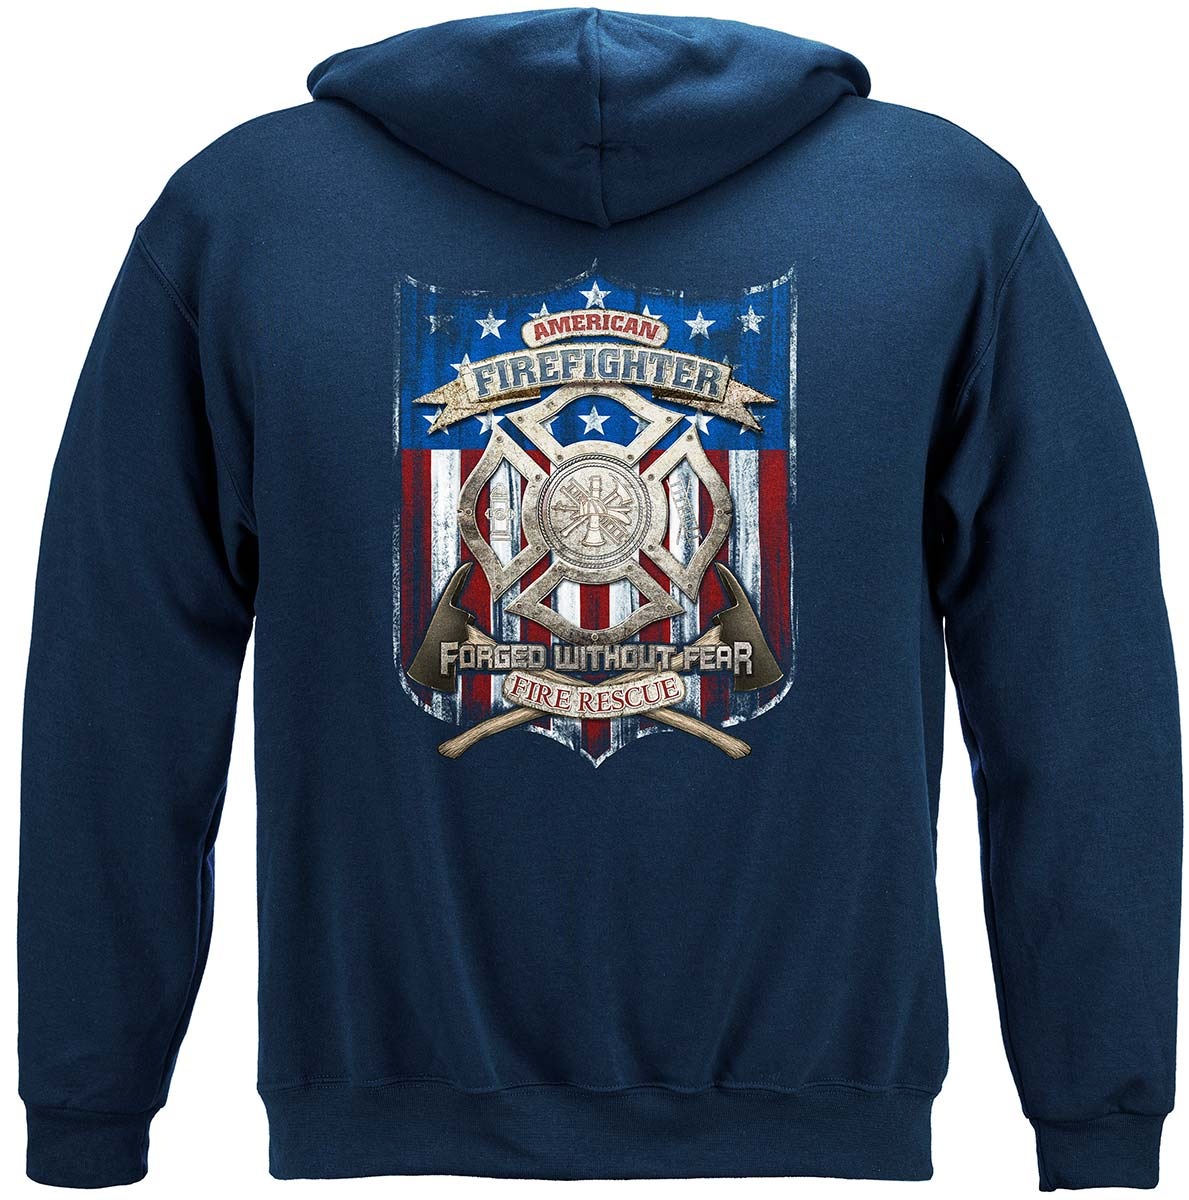 Firefighter American Made Premium Hooded Sweat Shirt